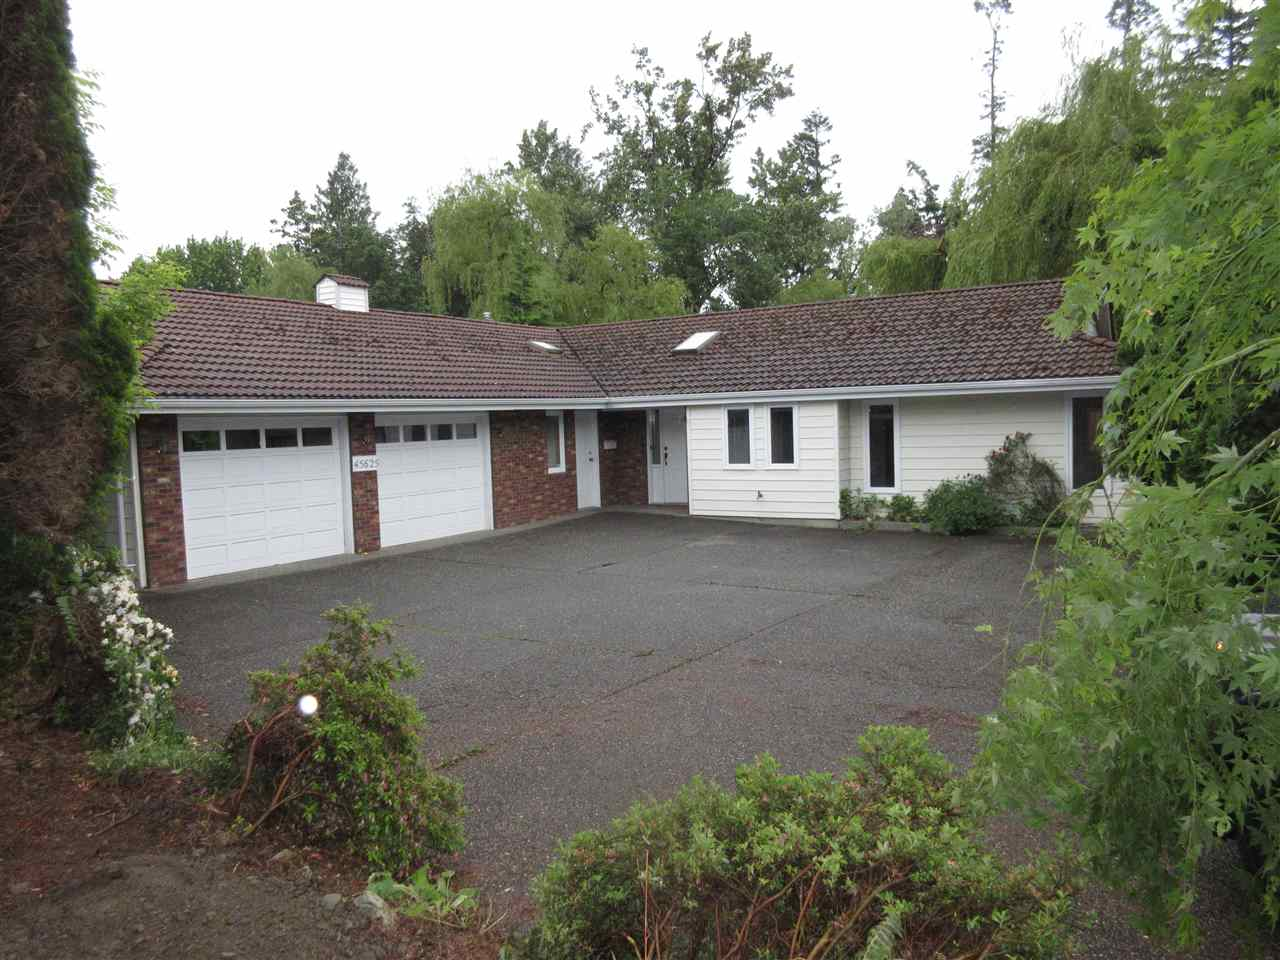 Photo 10: 45625 WORTHINGTON Place in Sardis: Sardis West Vedder Rd House for sale : MLS(r) # R2176017